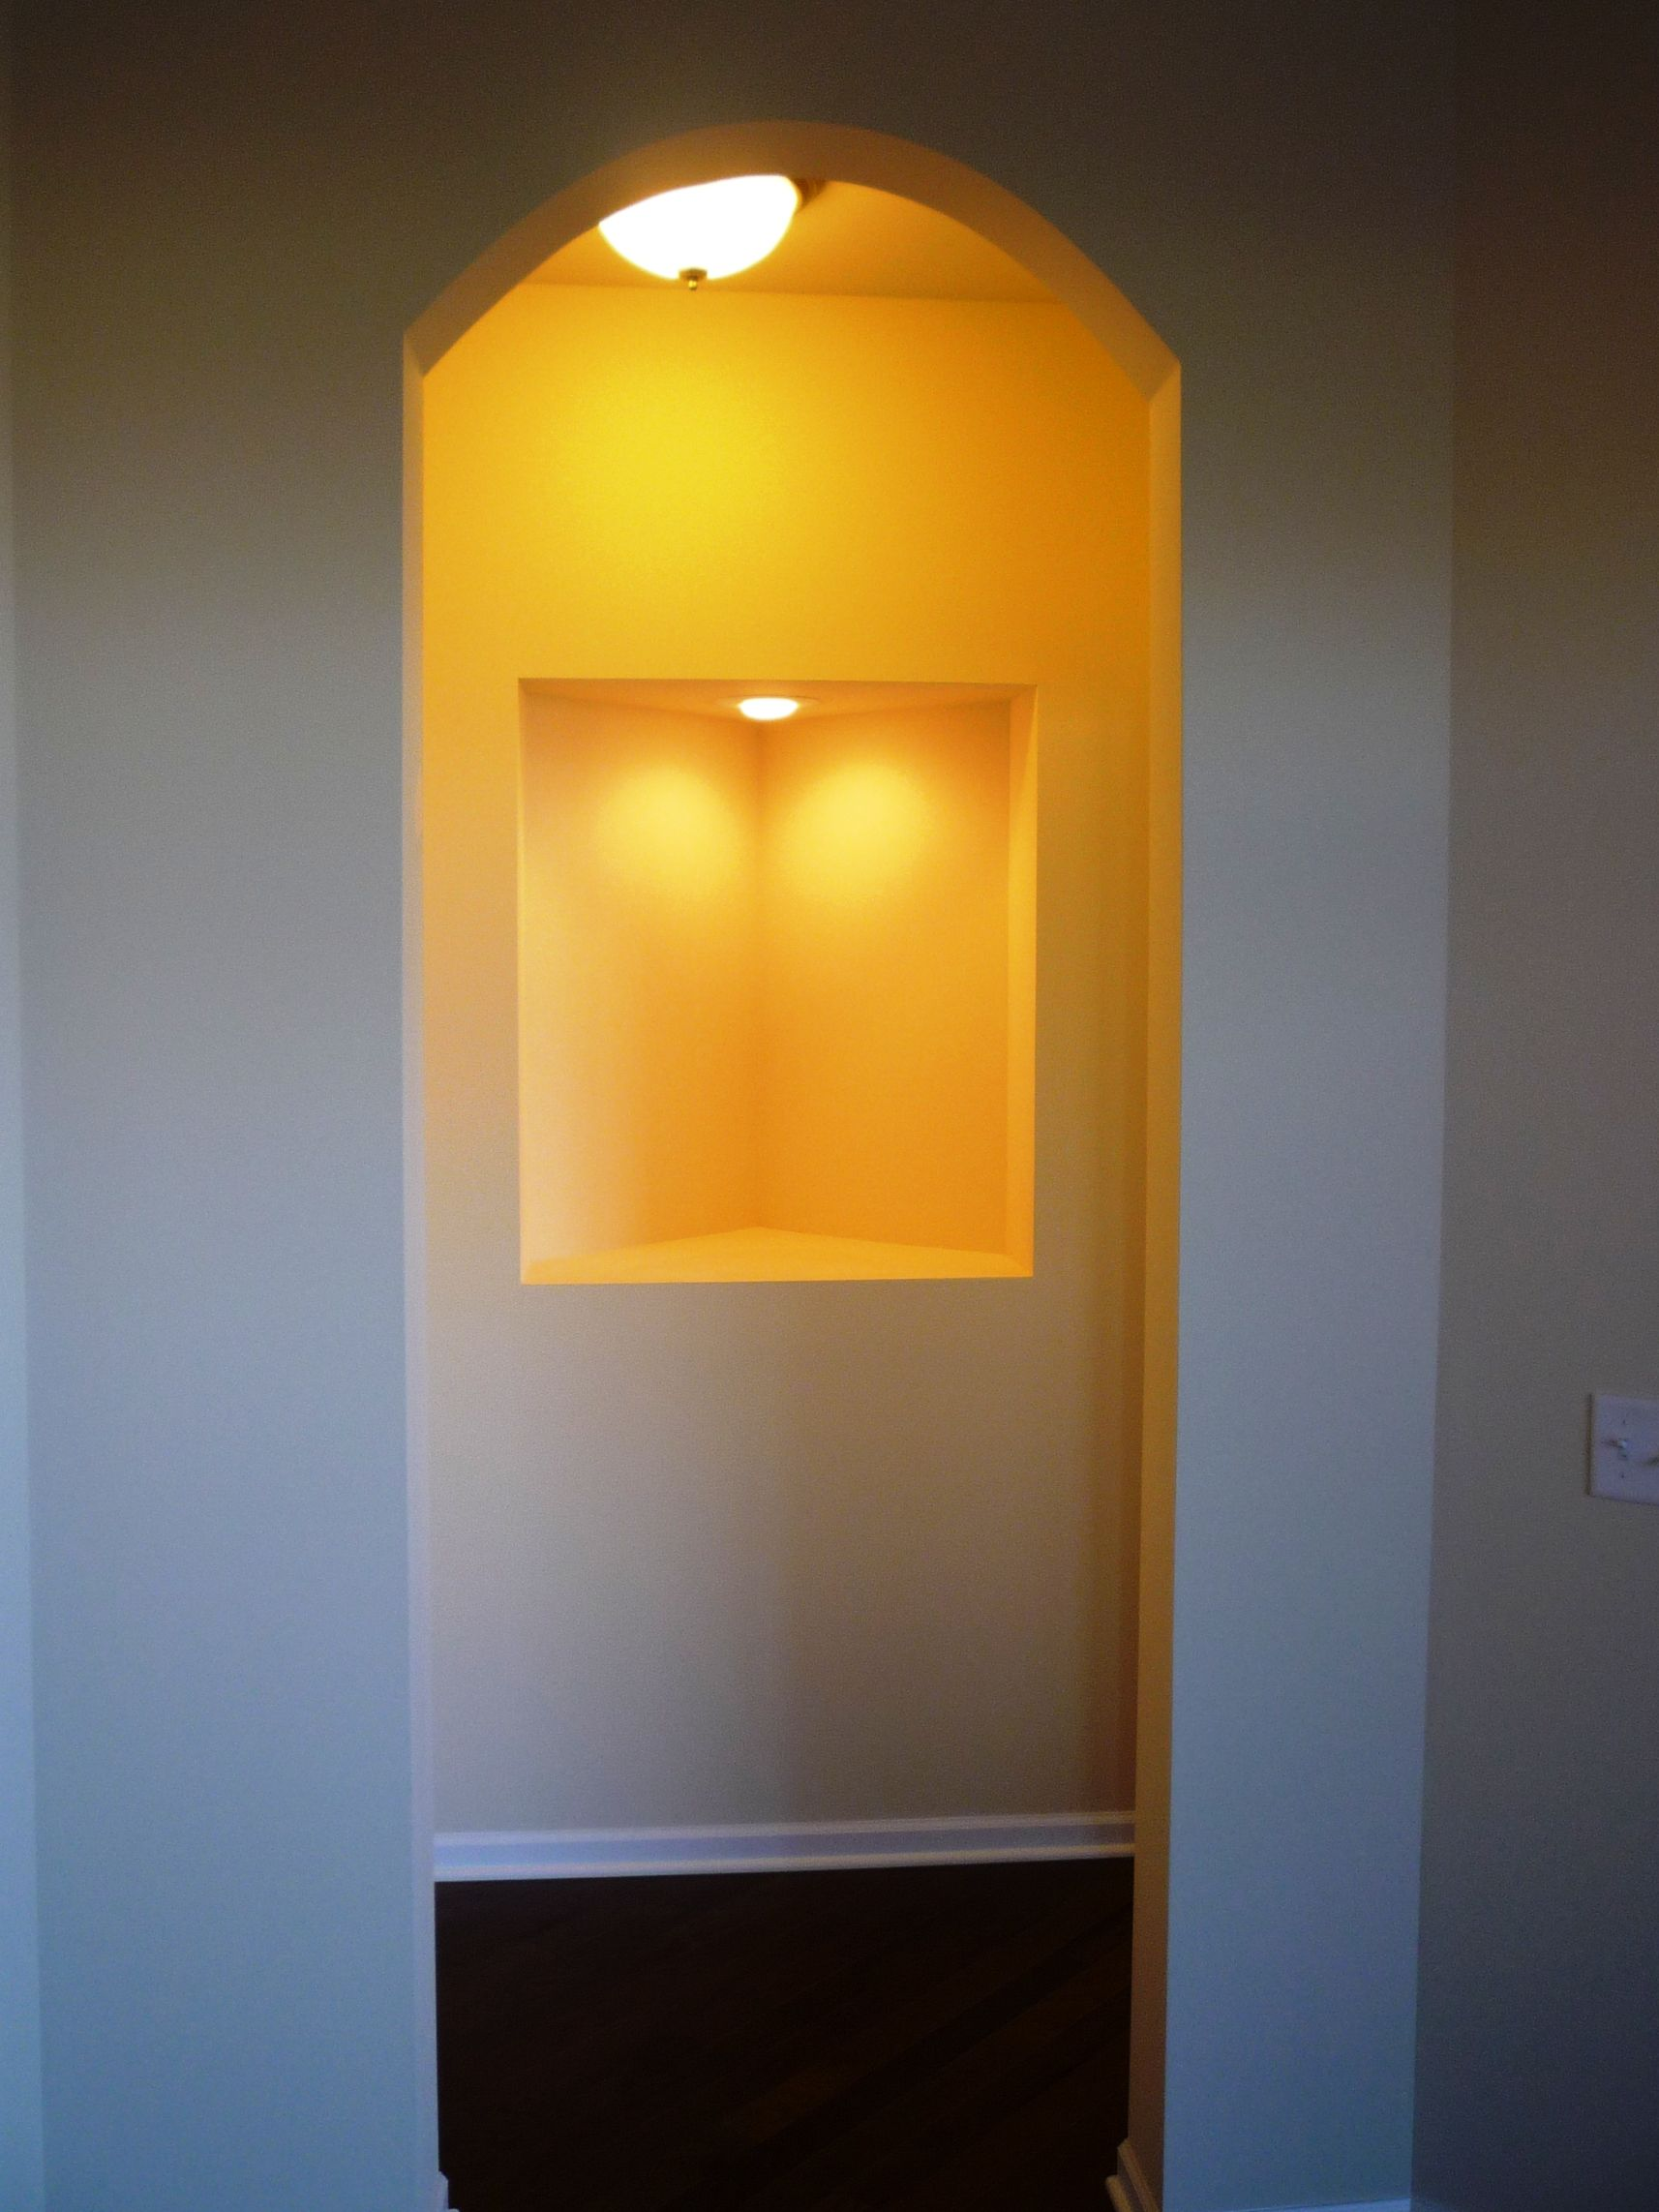 Hallway to master bedroom - display wall niche | Portico | Pinterest ...